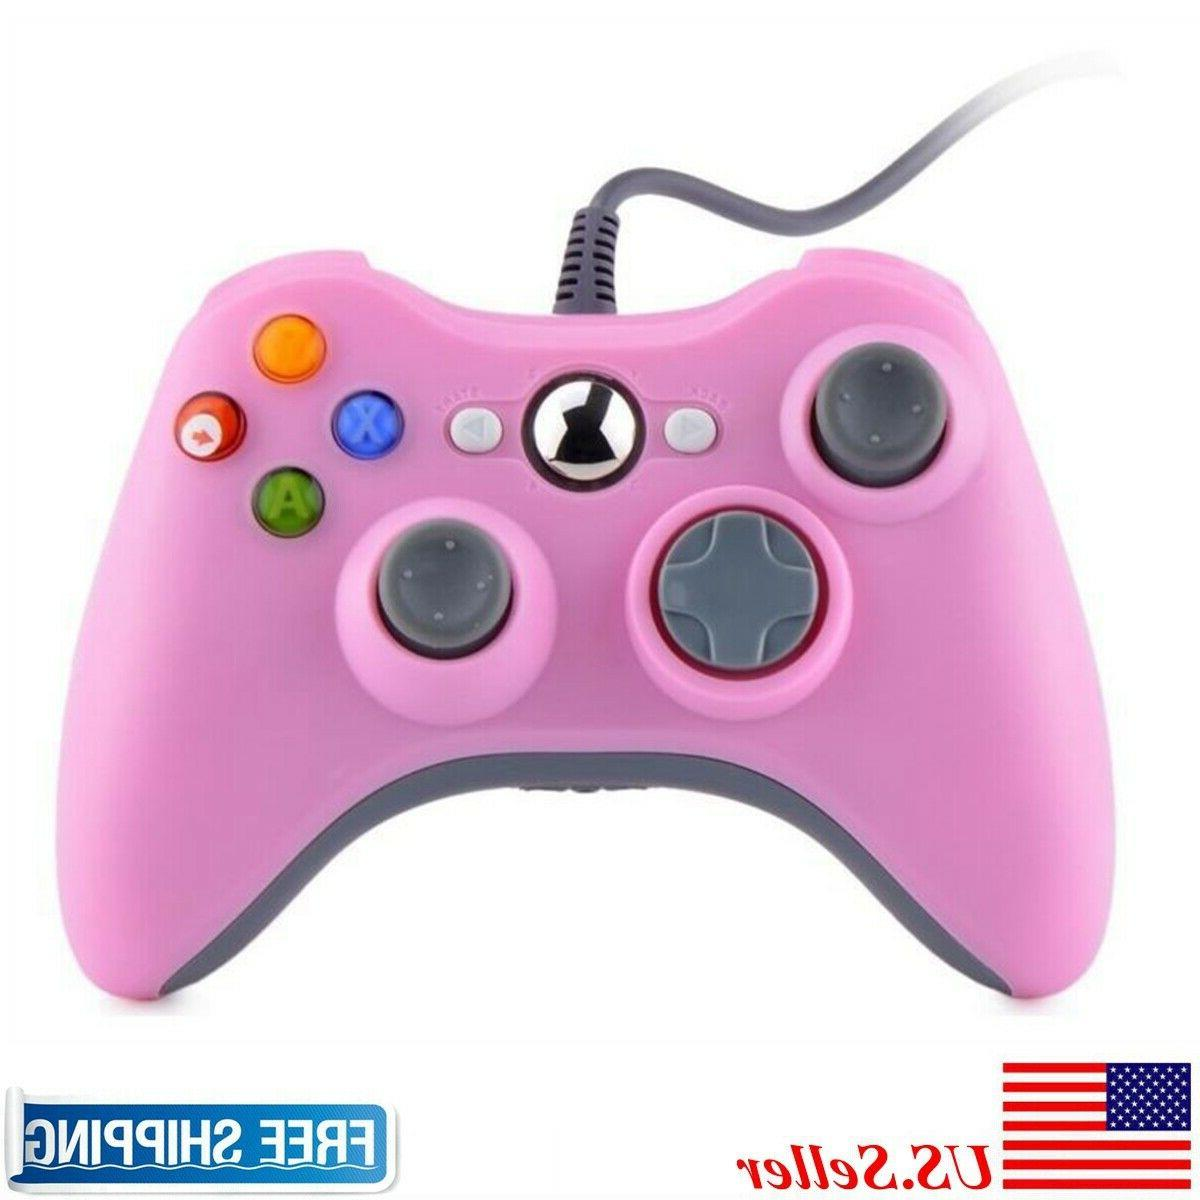 New USB GamePad Controller For Console / US